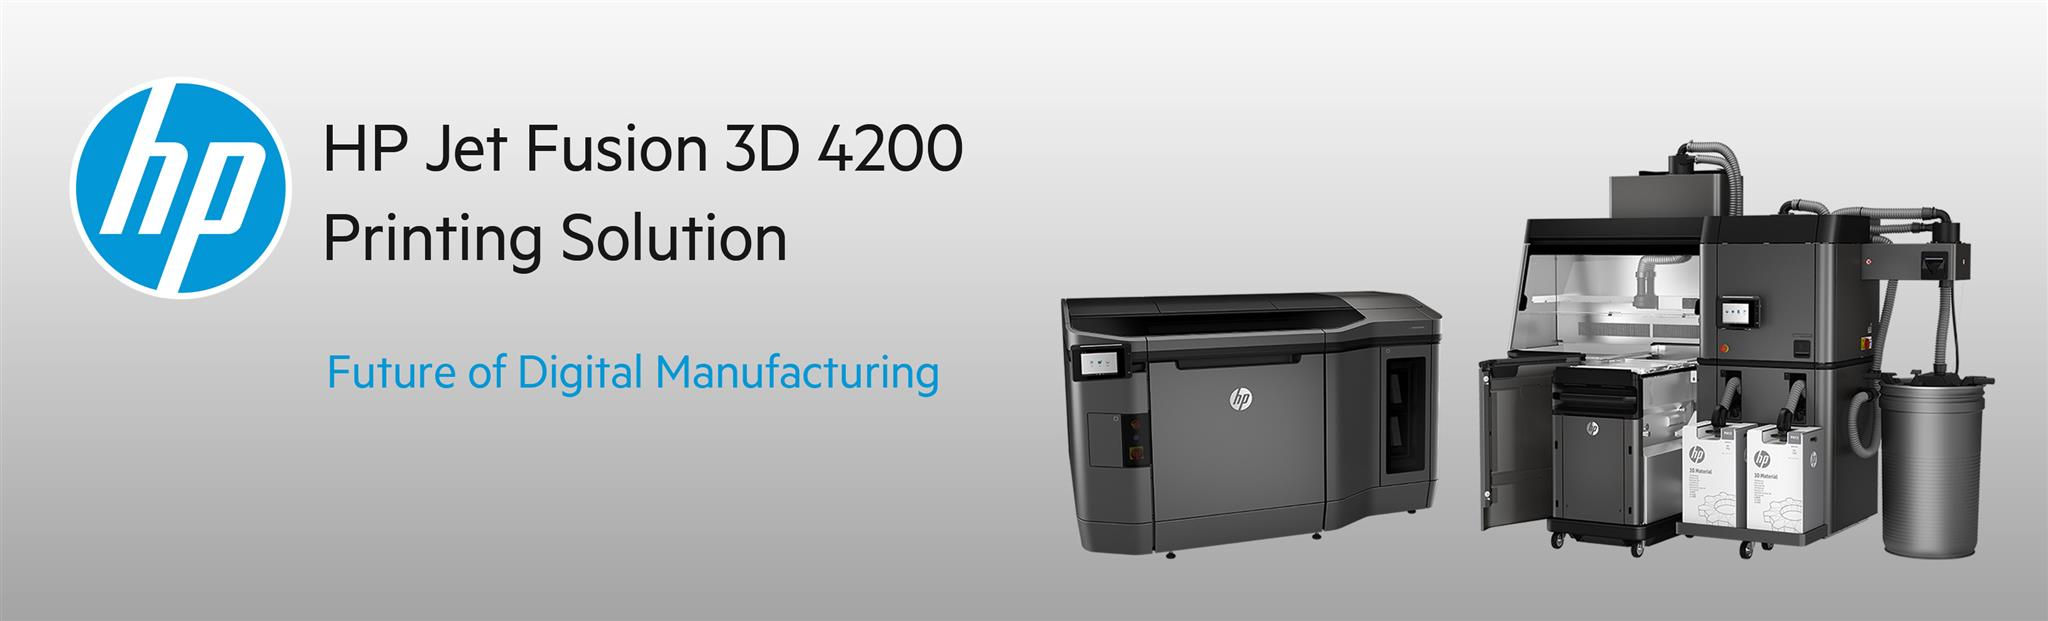 HP-Jet-Fusion-3D-Printing-Solution_Website